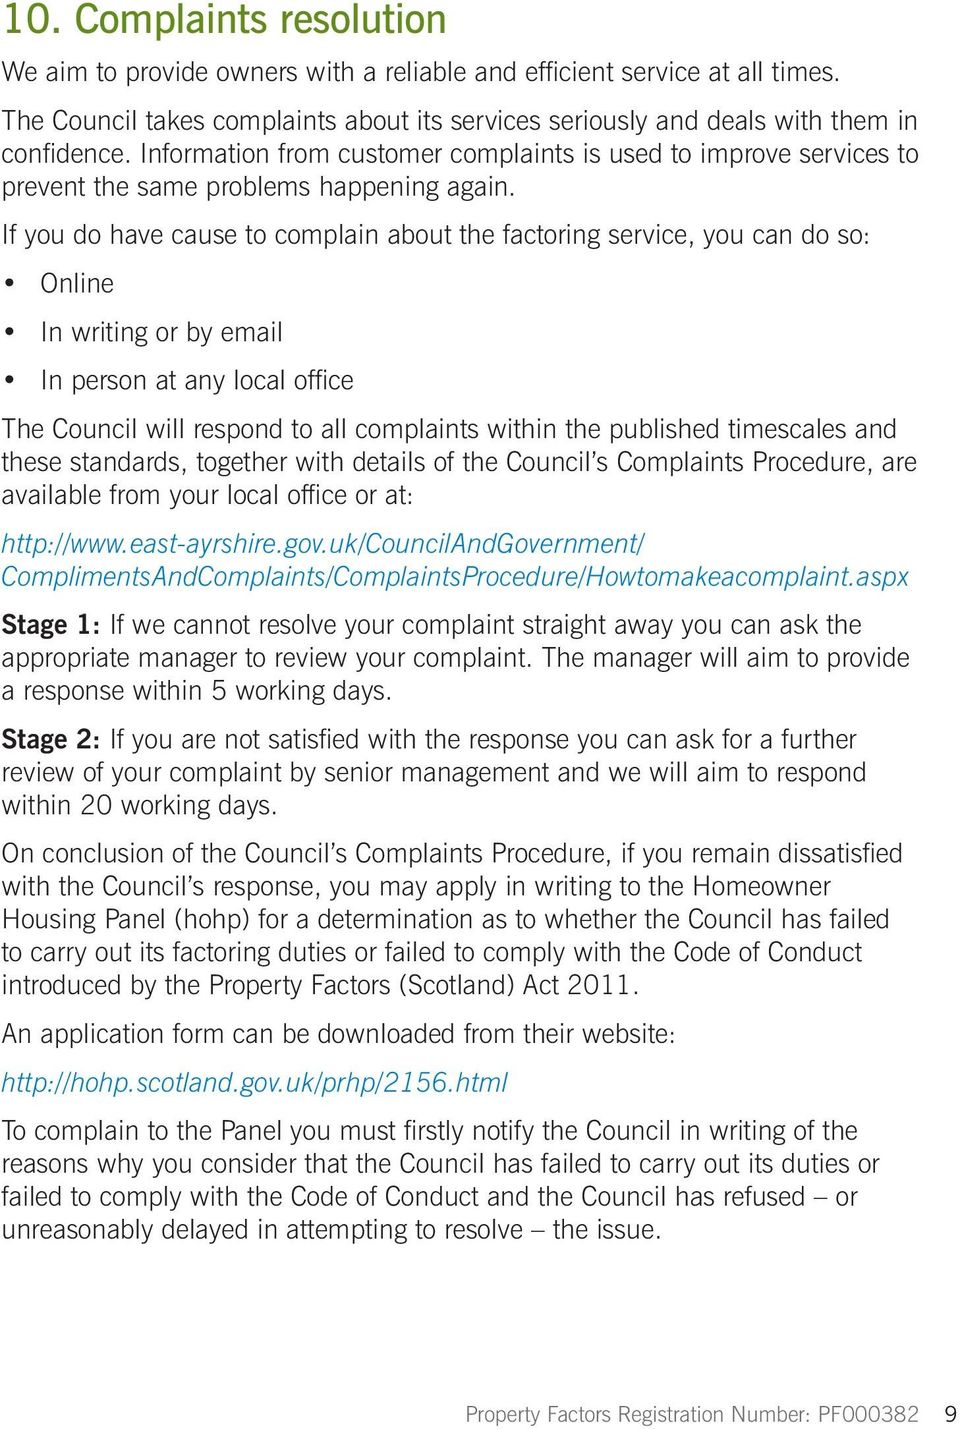 If you do have cause to complain about the factoring service, you can do so: Online In writing or by email In person at any local office The Council will respond to all complaints within the